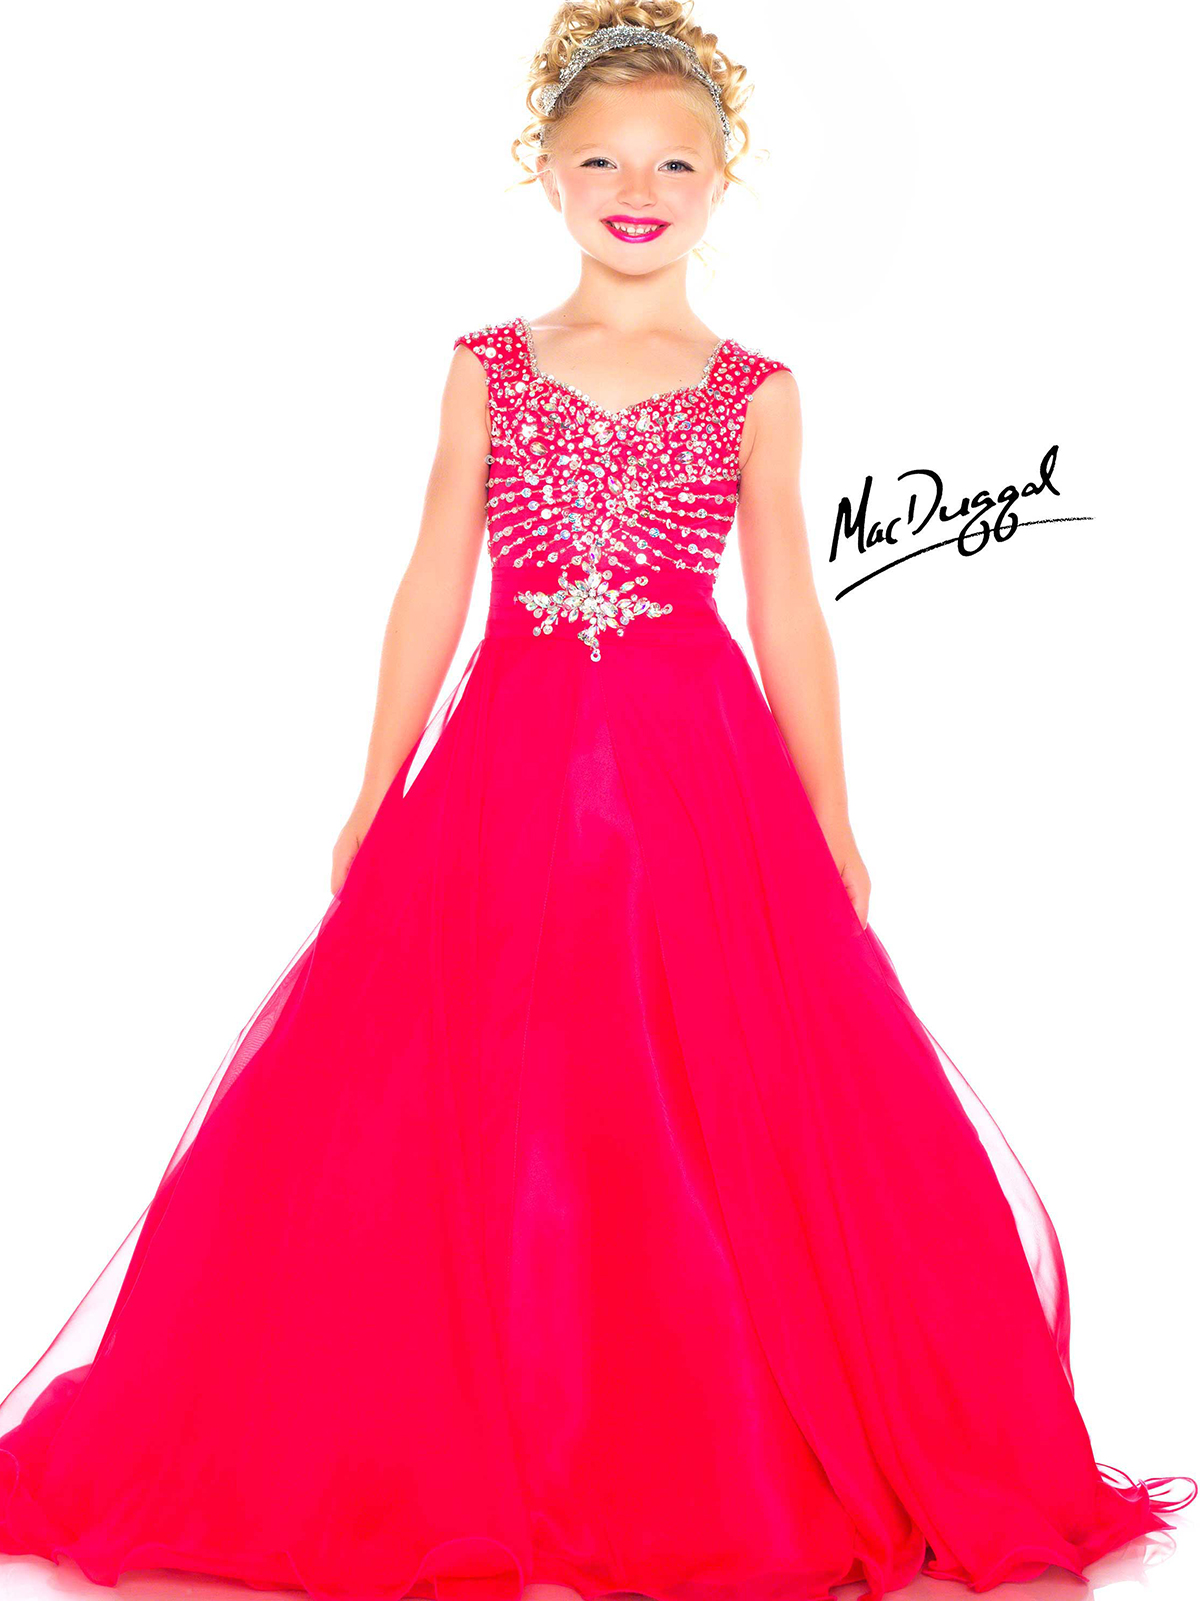 Sugar pageant dresses for little girls